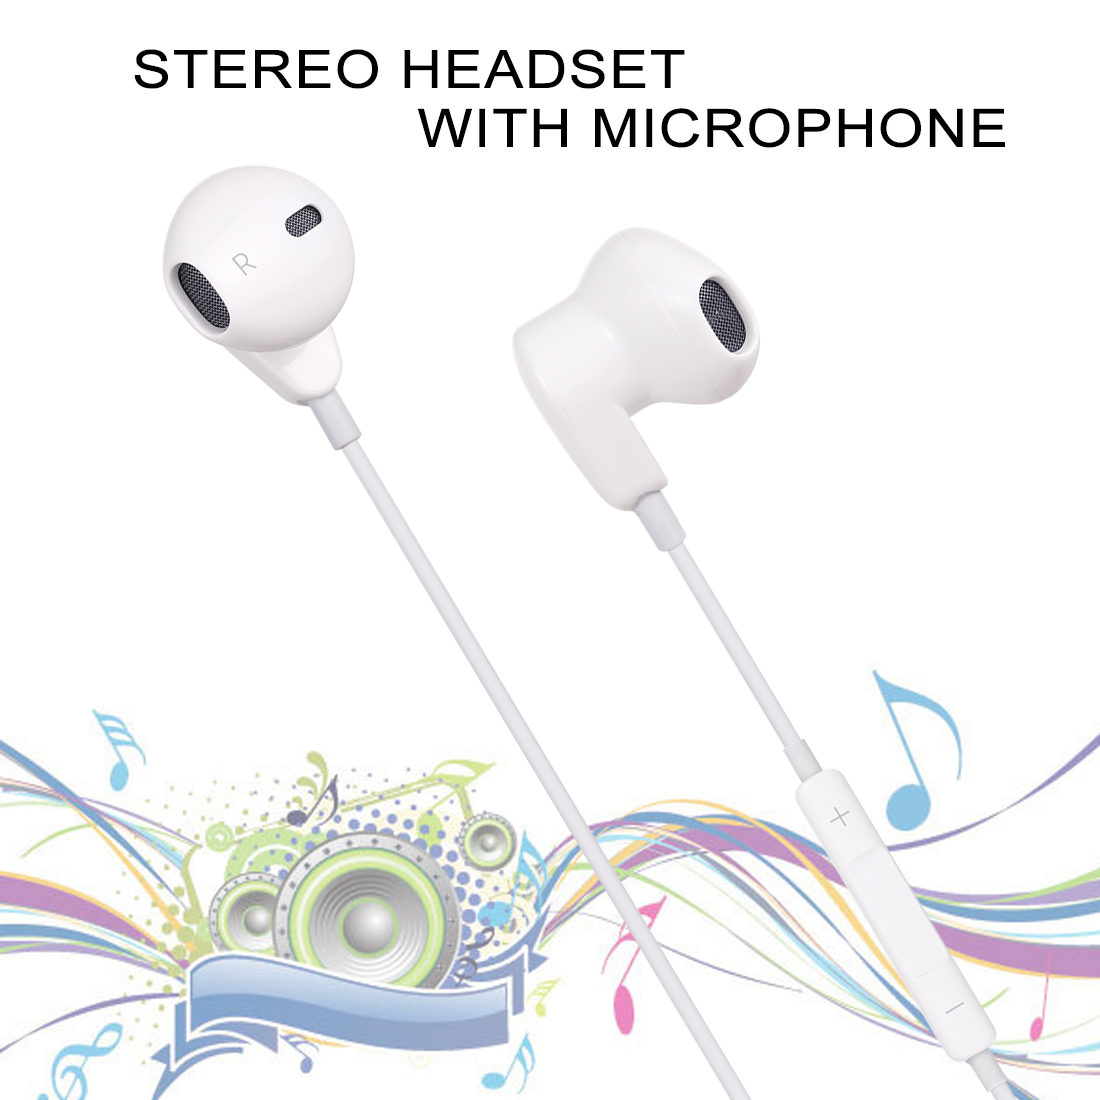 ME563-T 1.2m Wired In Ear USB-C / Type-C Interface Headset with Mic, For Huawei, Xiaomi and Other Smartphones with USB-C / Type-C Interface (White)